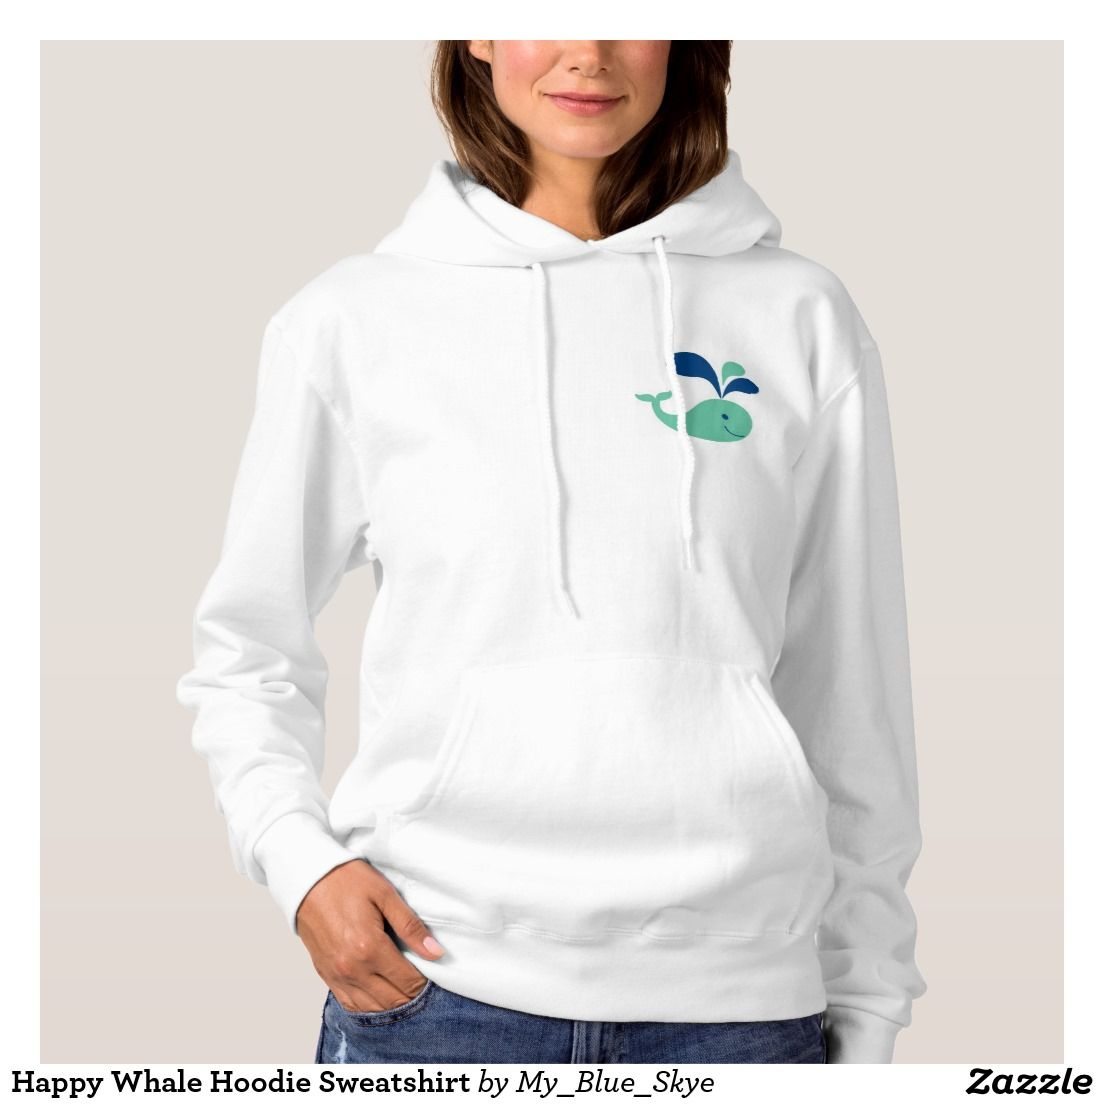 Happy Whale Hoodie Sweatshirt. #beachy #happy #fun #hoodies